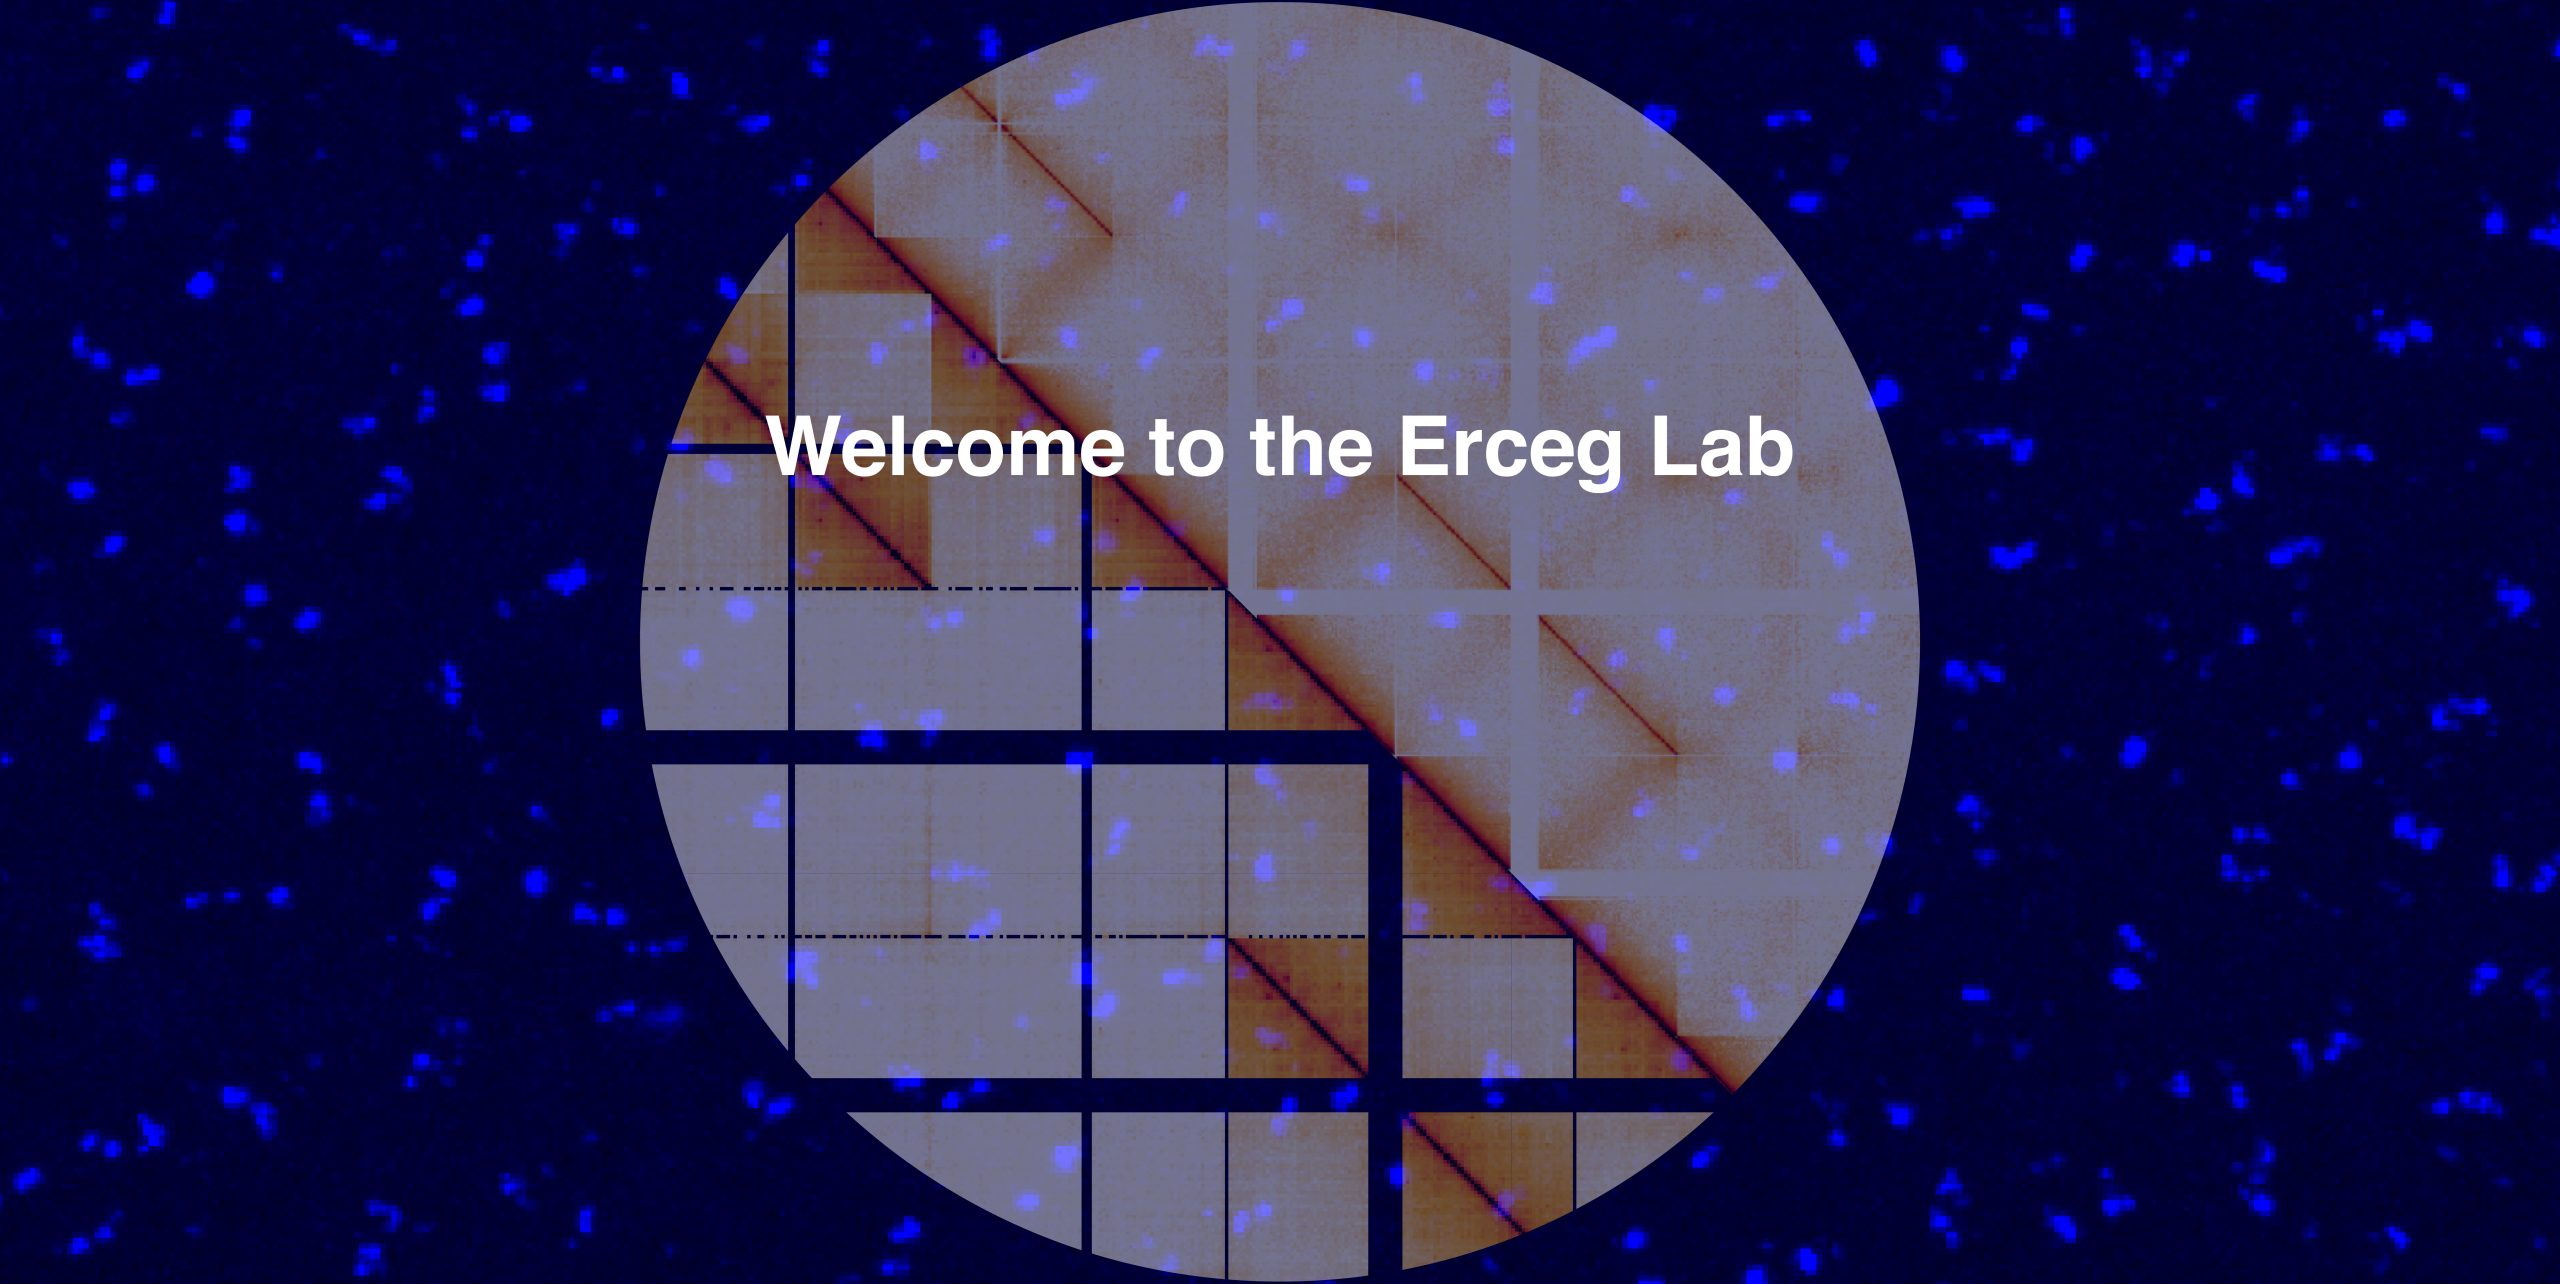 Welcome to the Erceg Lab